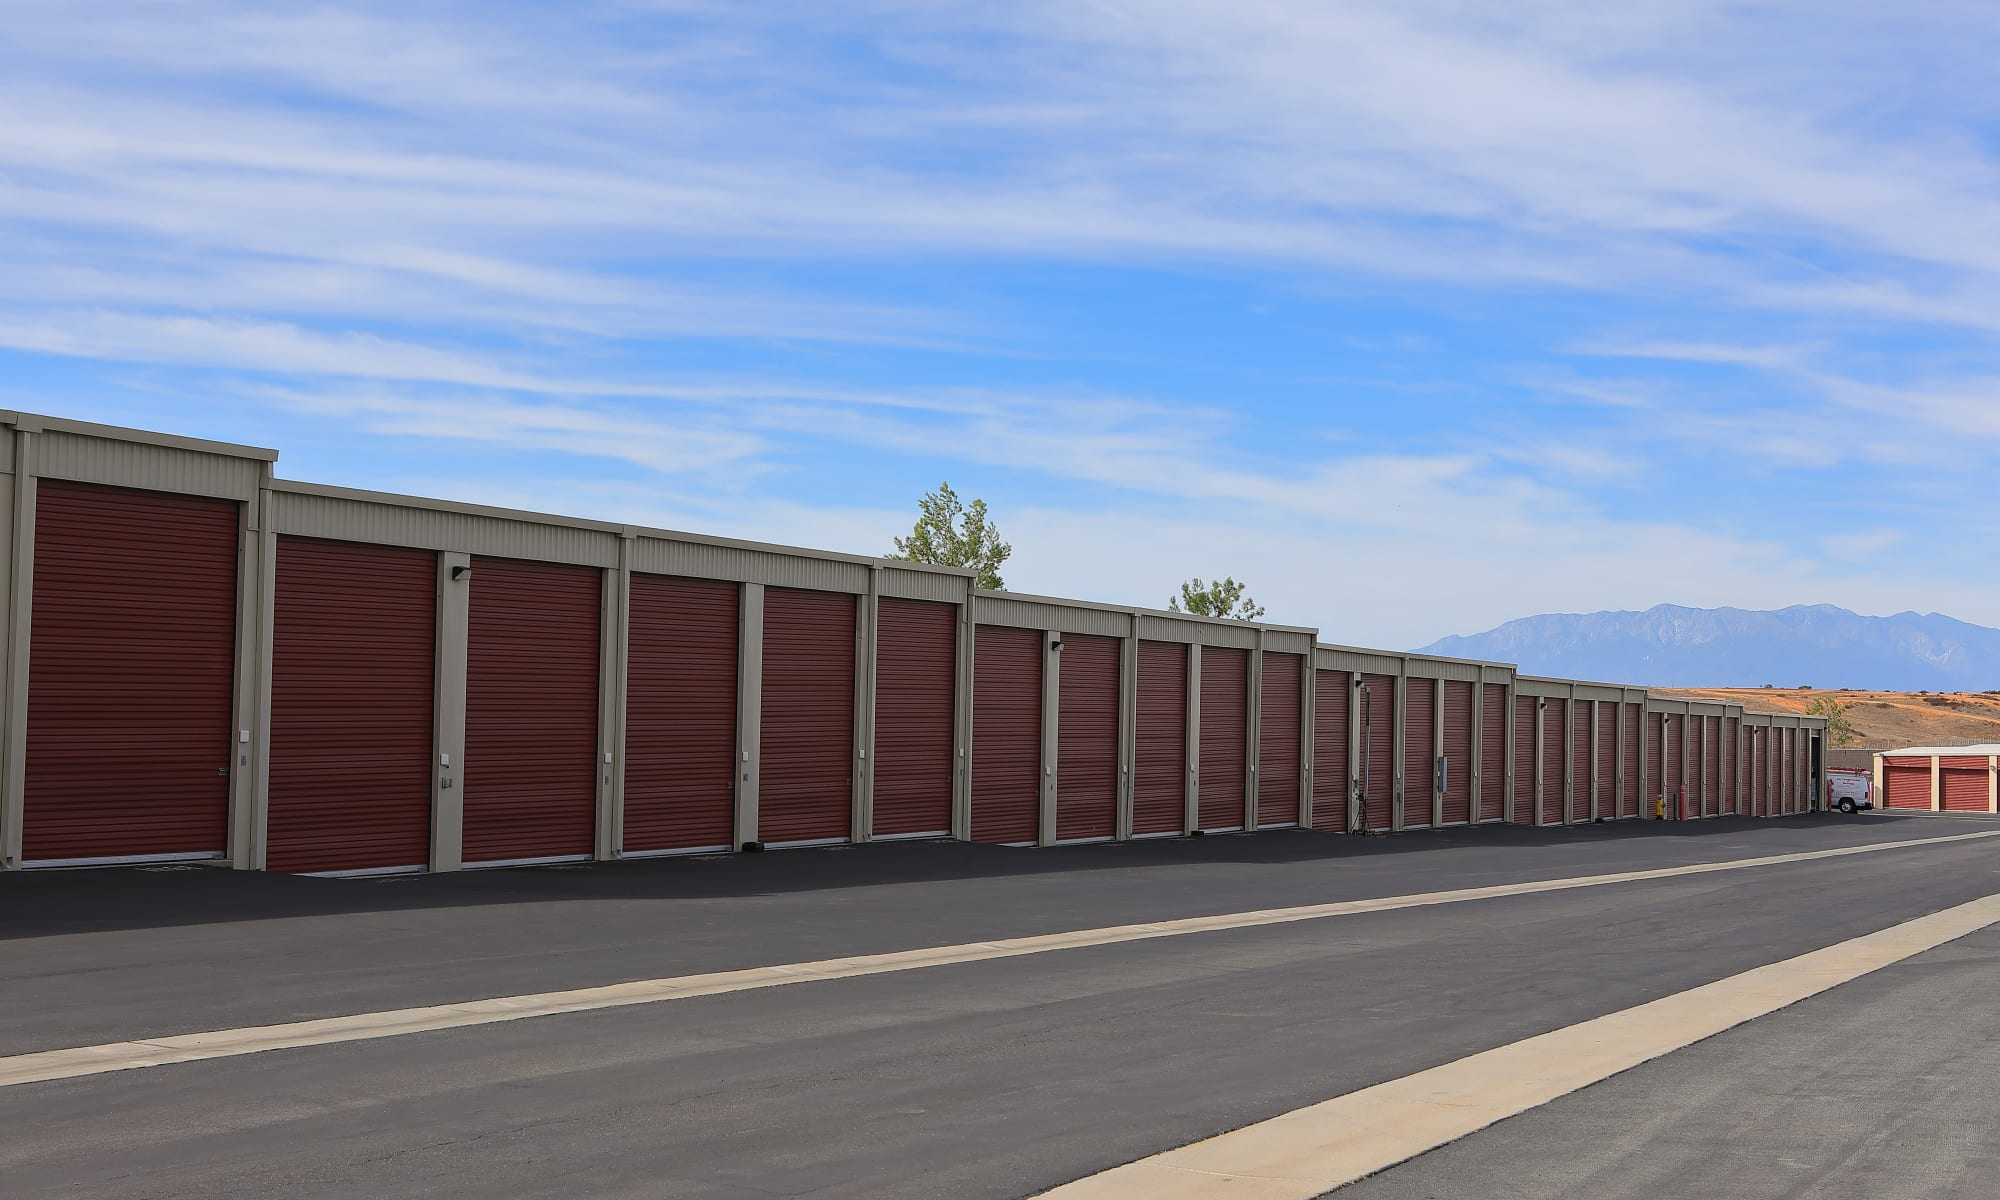 Storage Solutions storage units for rent in Beaumont, California